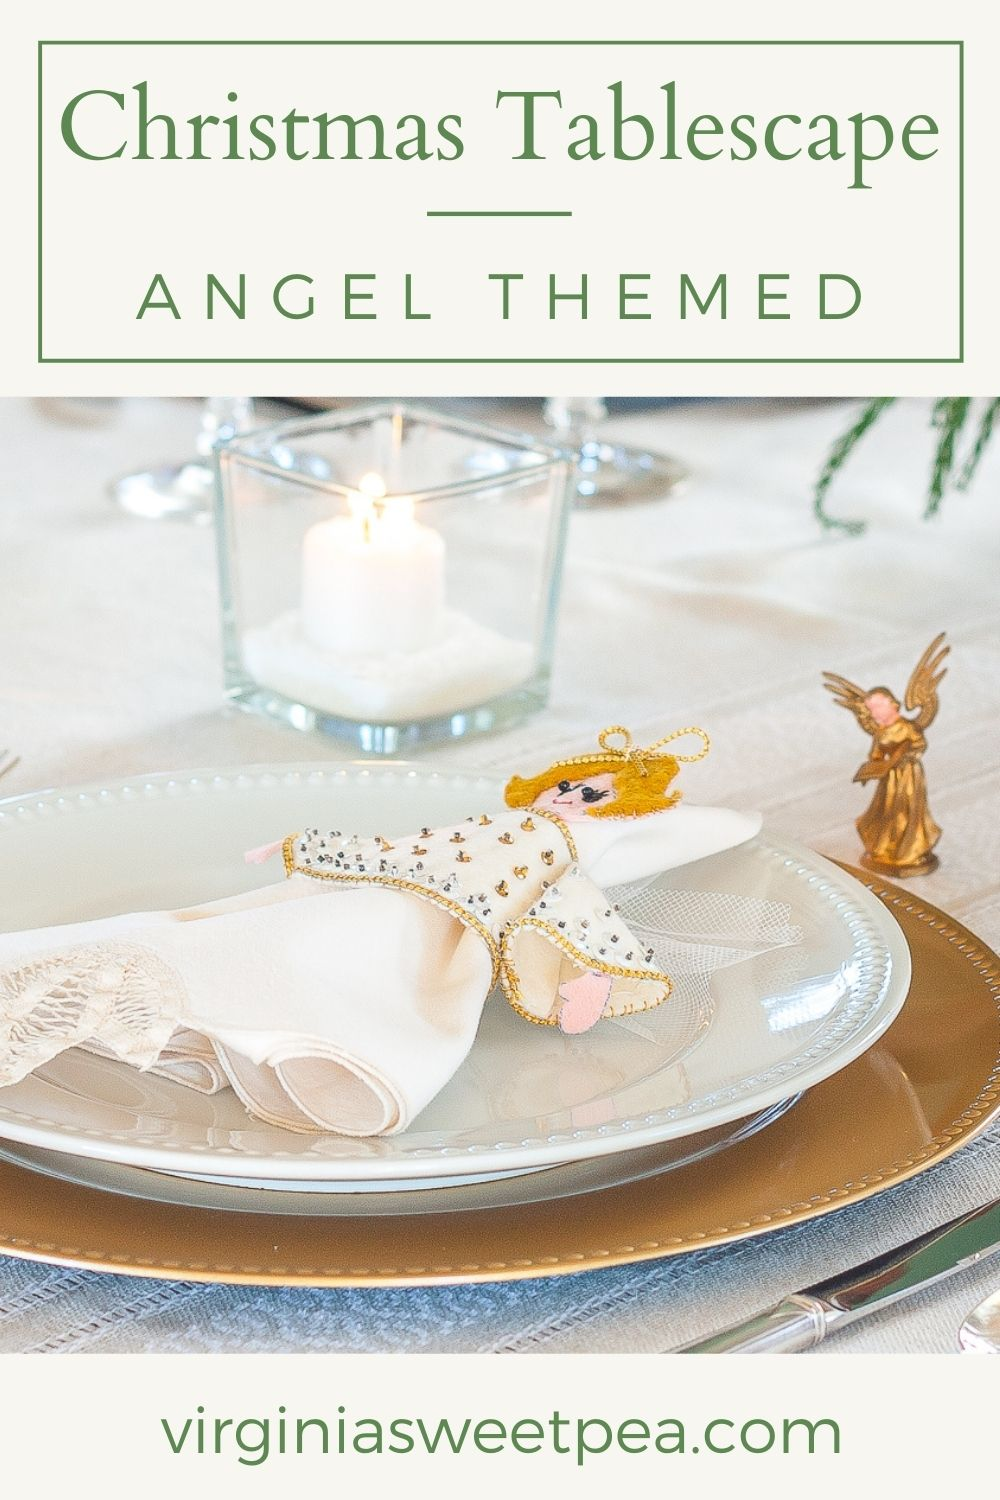 A table is set for Christmas with an angel theme.  Don't miss seeing all of the pretty details! via @spaula